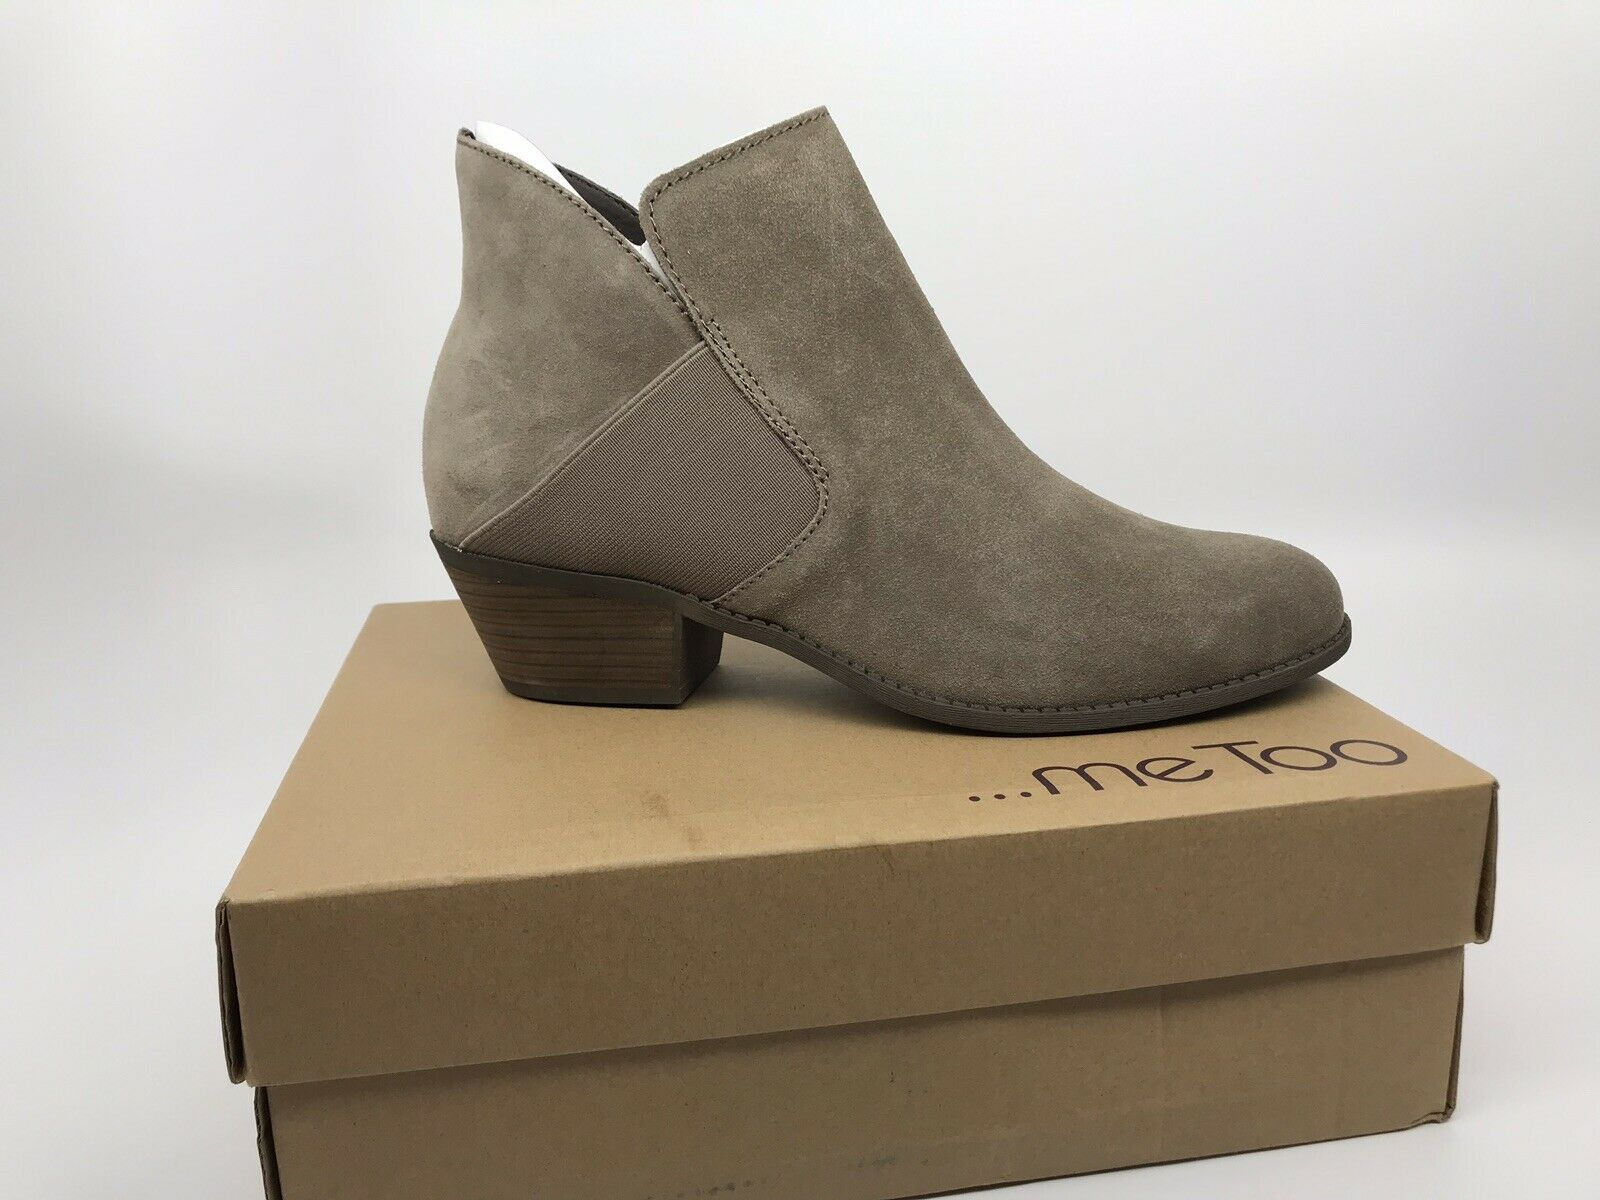 ME TOO Zoey Womens Suede Bootie Ankle Boot Size 11 M Nutmeg Brown